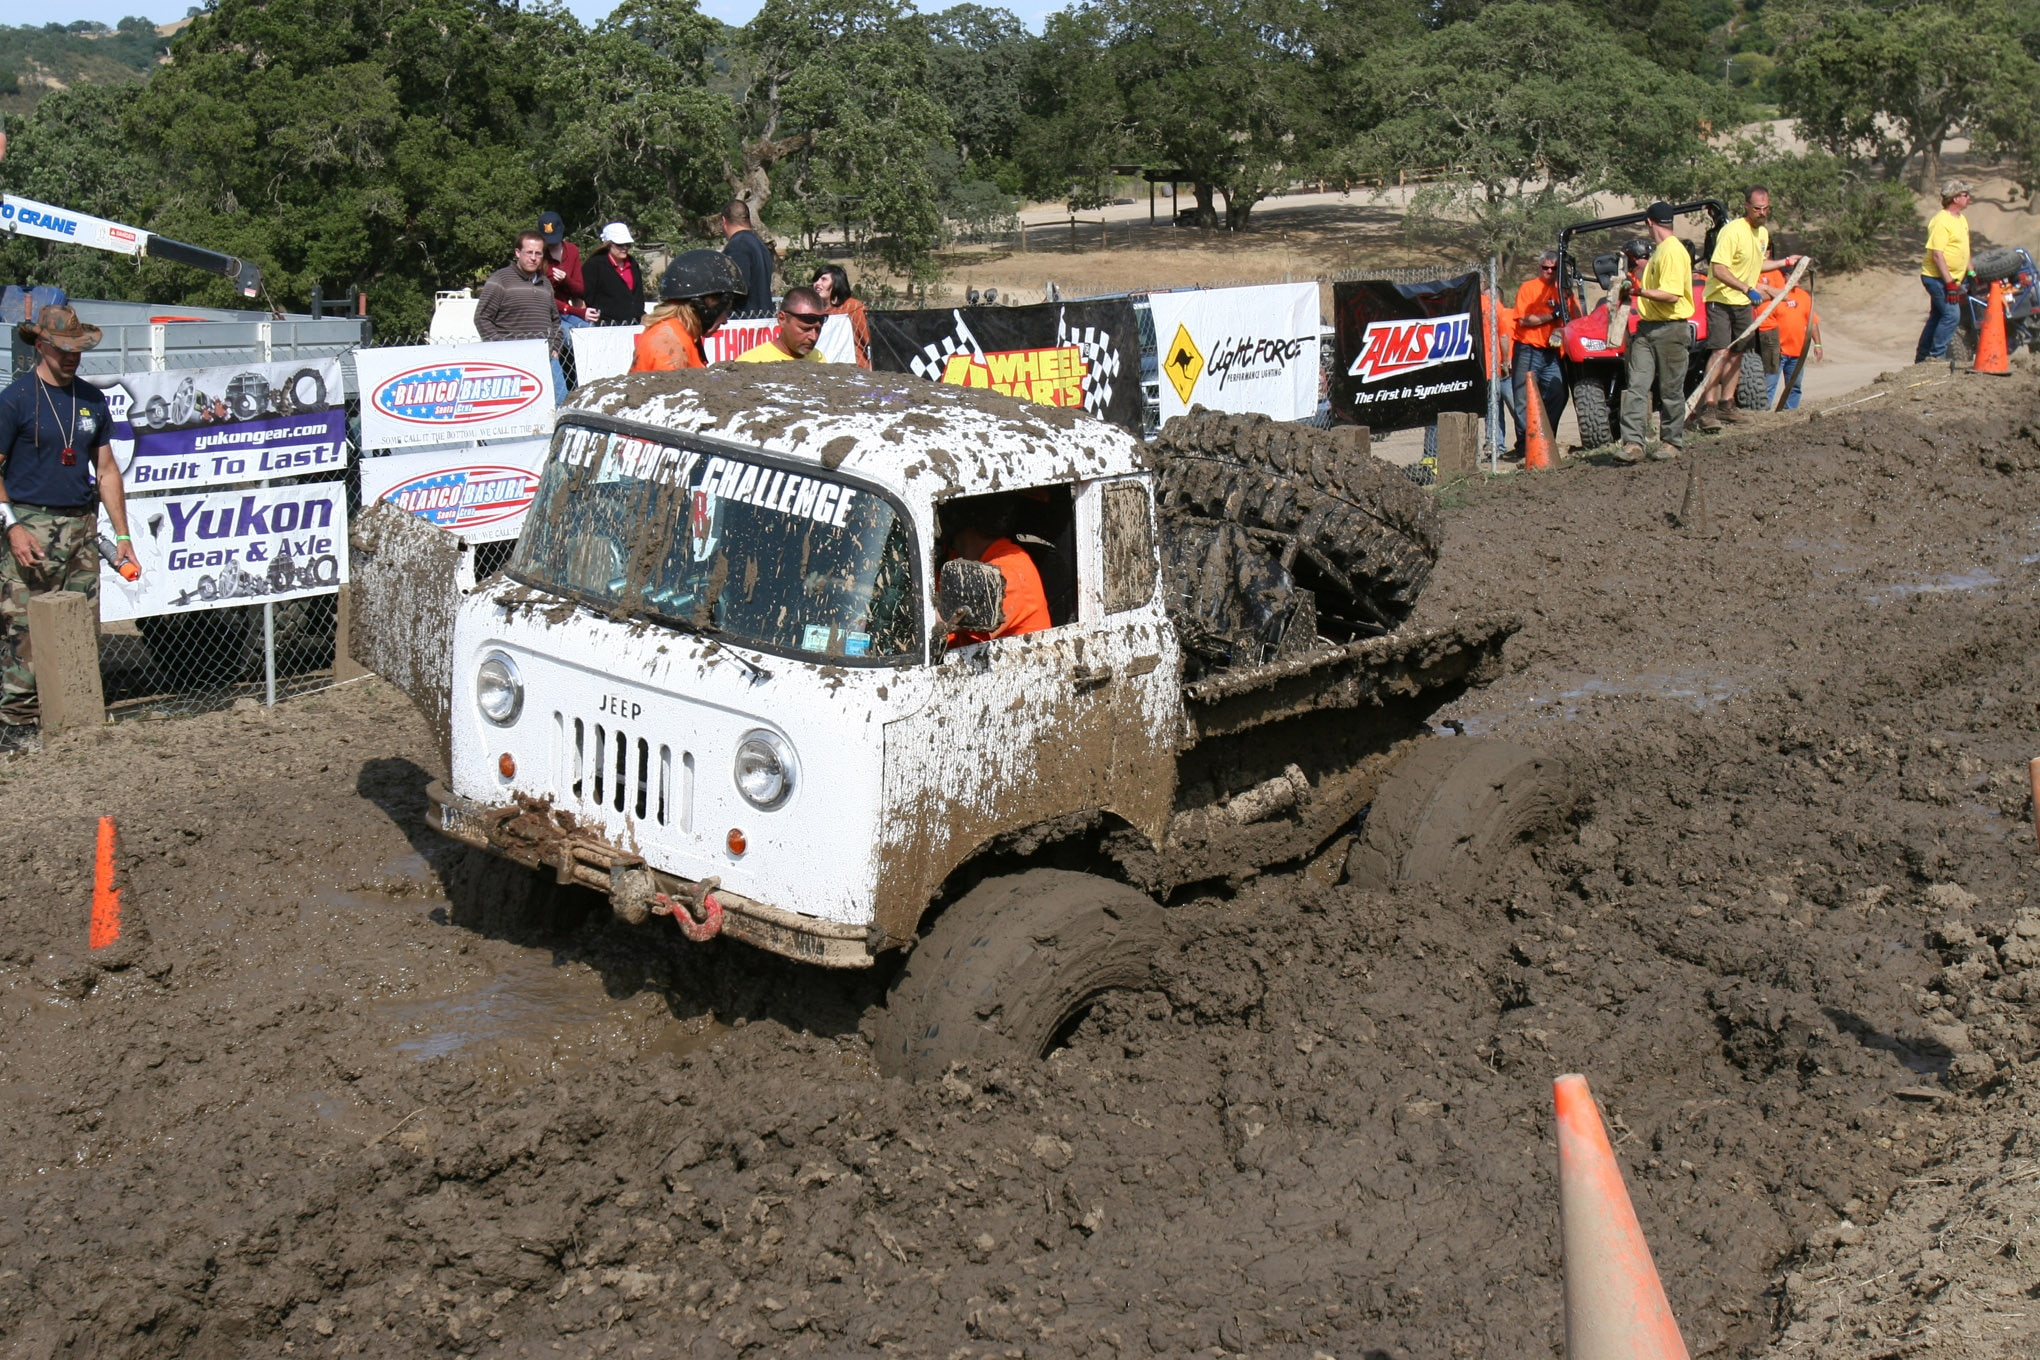 002 mailbag jeep fc 150 forward control top truck challenge